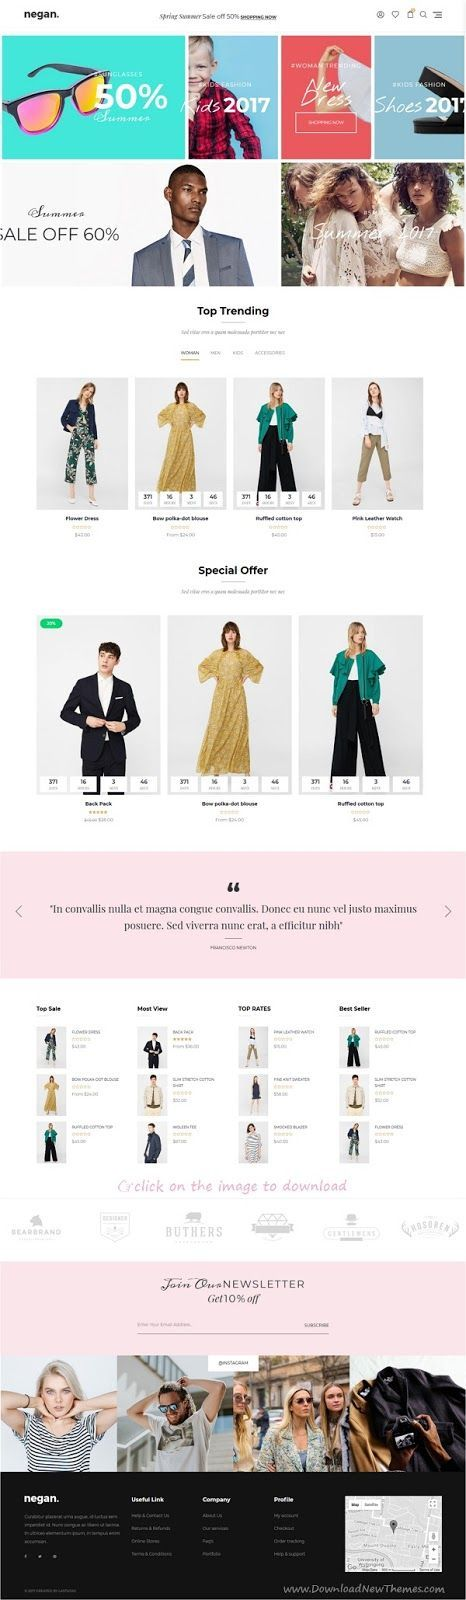 Negan is clean, minimal and modern design responsive Shopify theme for stunning fashion store eCommerce website. It comes with 15+ niche homepage layouts, SEO optimized, wishlist module, product hover, quick view and much more amazing features. #SEOShopify